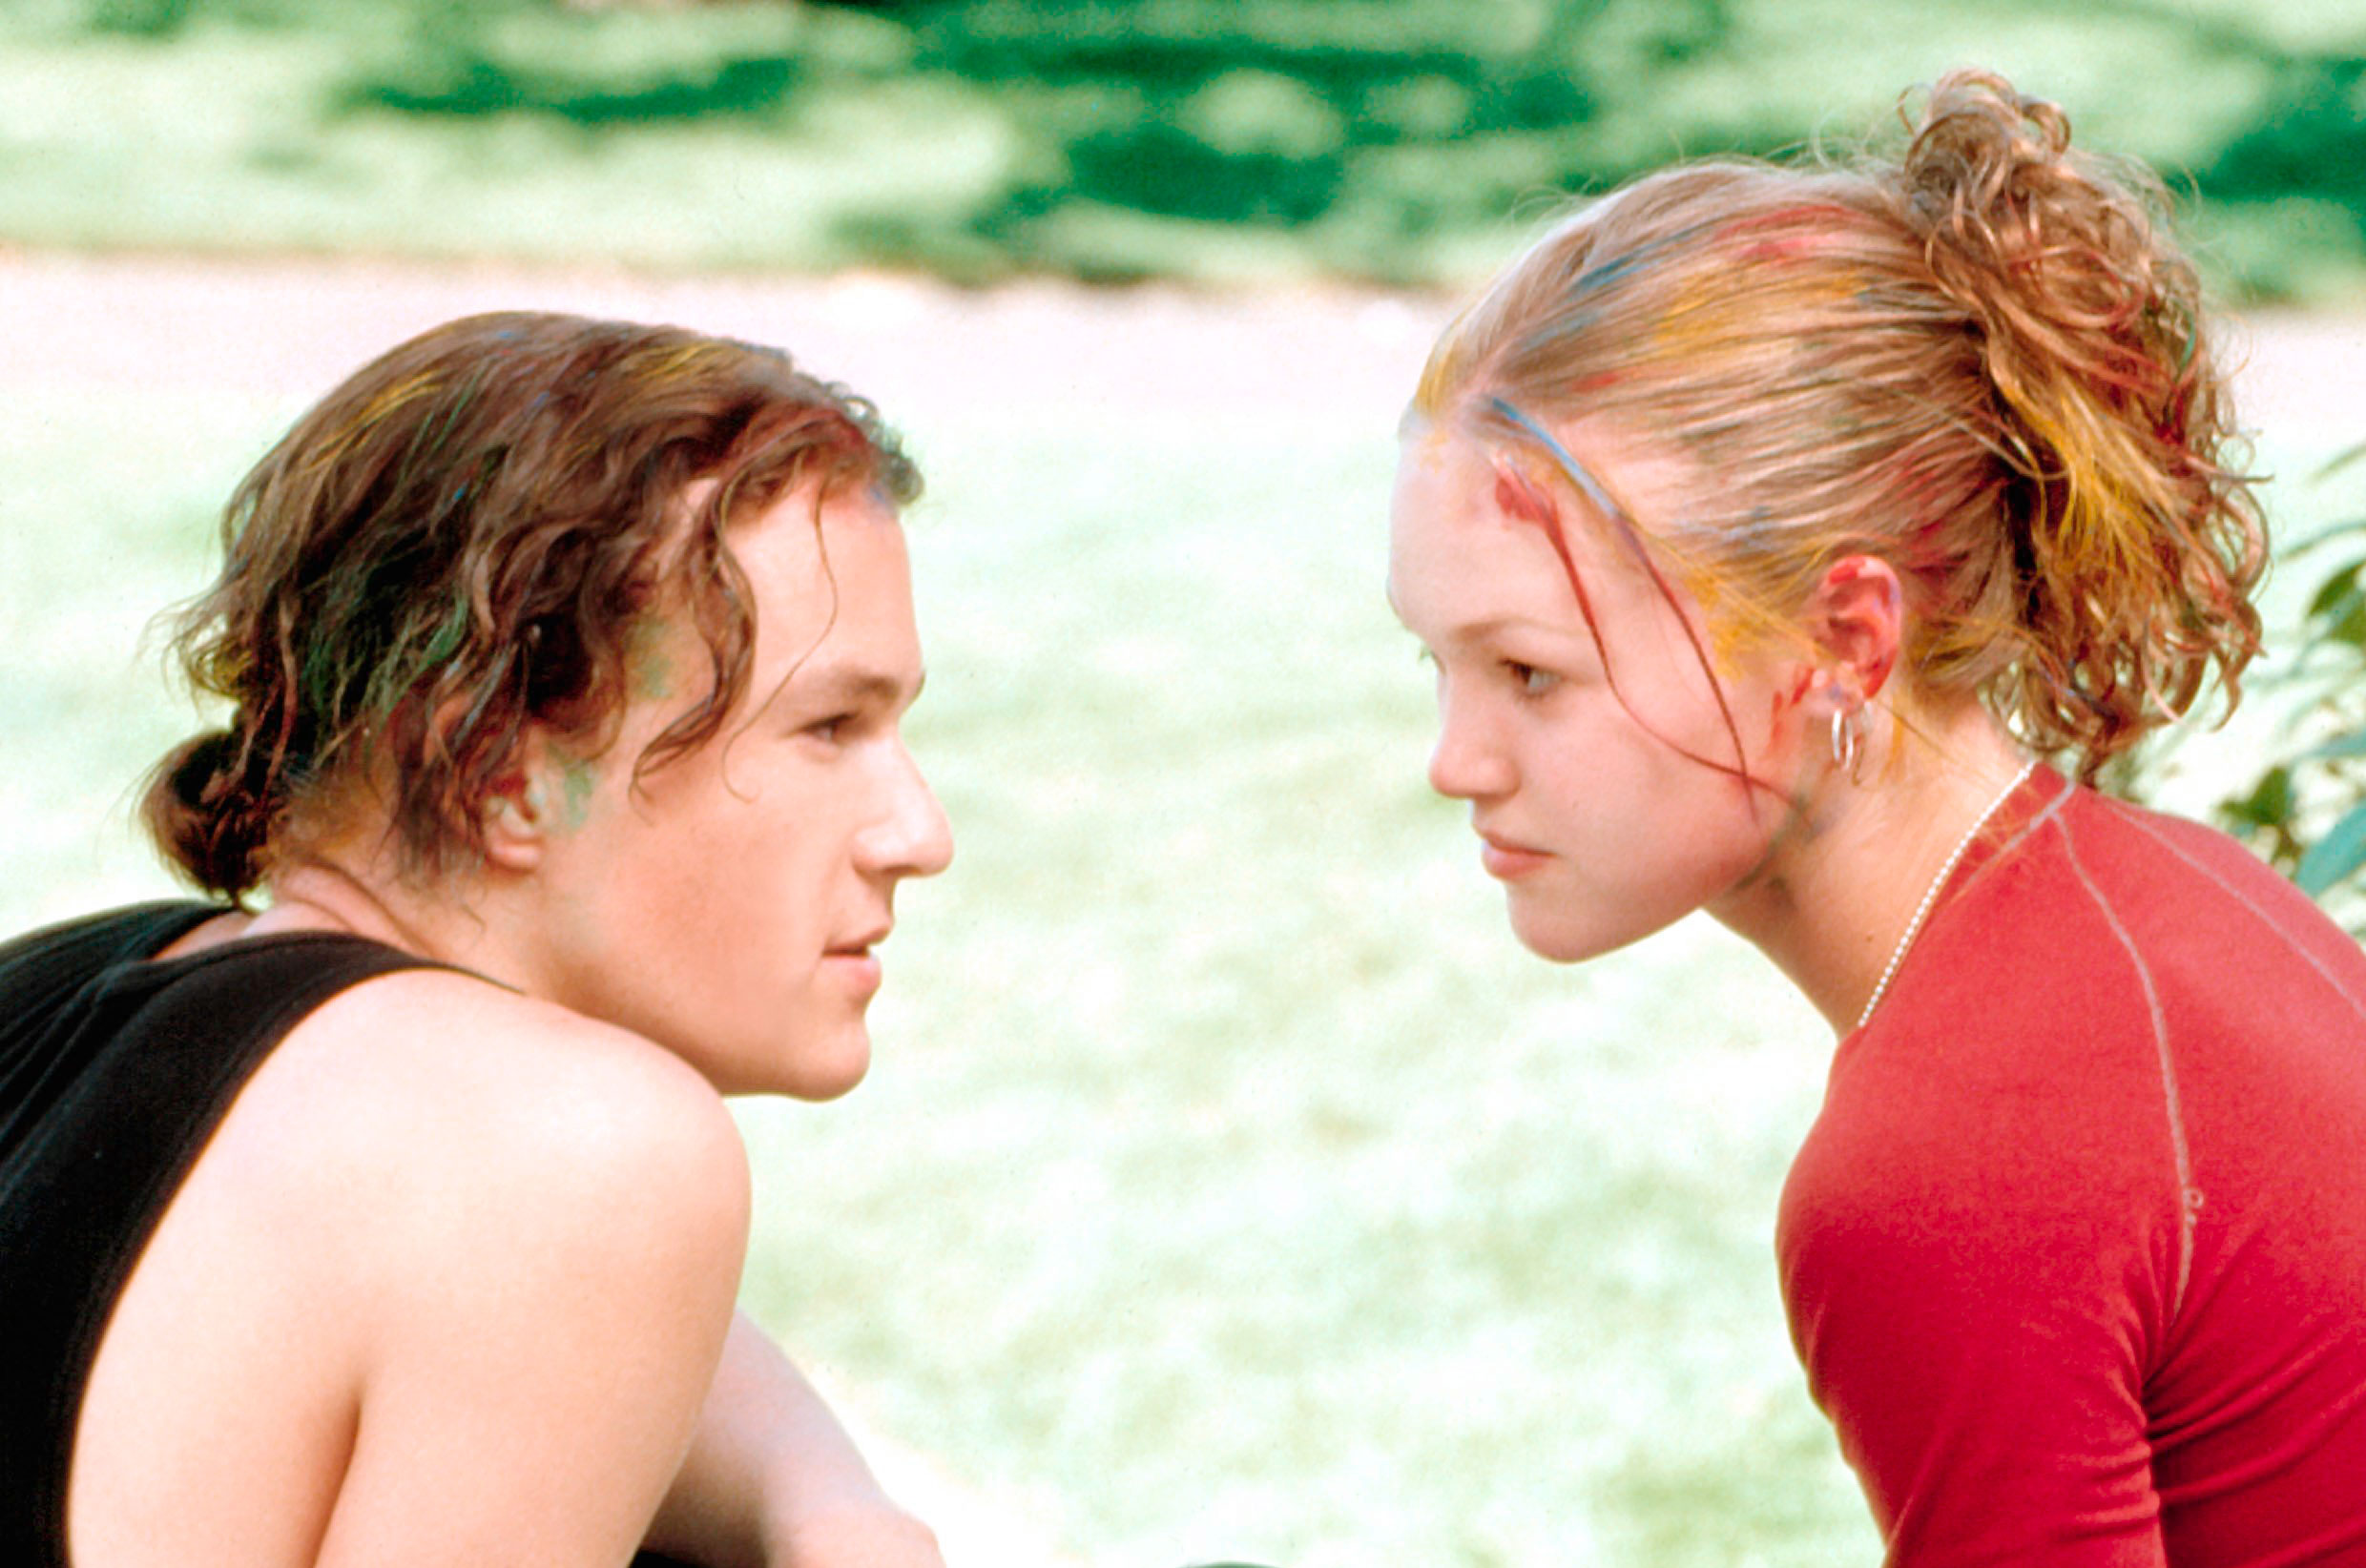 10 Things I Hate About You On Pinterest: We Got Nostalgic With Julia Stiles About '10 Things I Hate